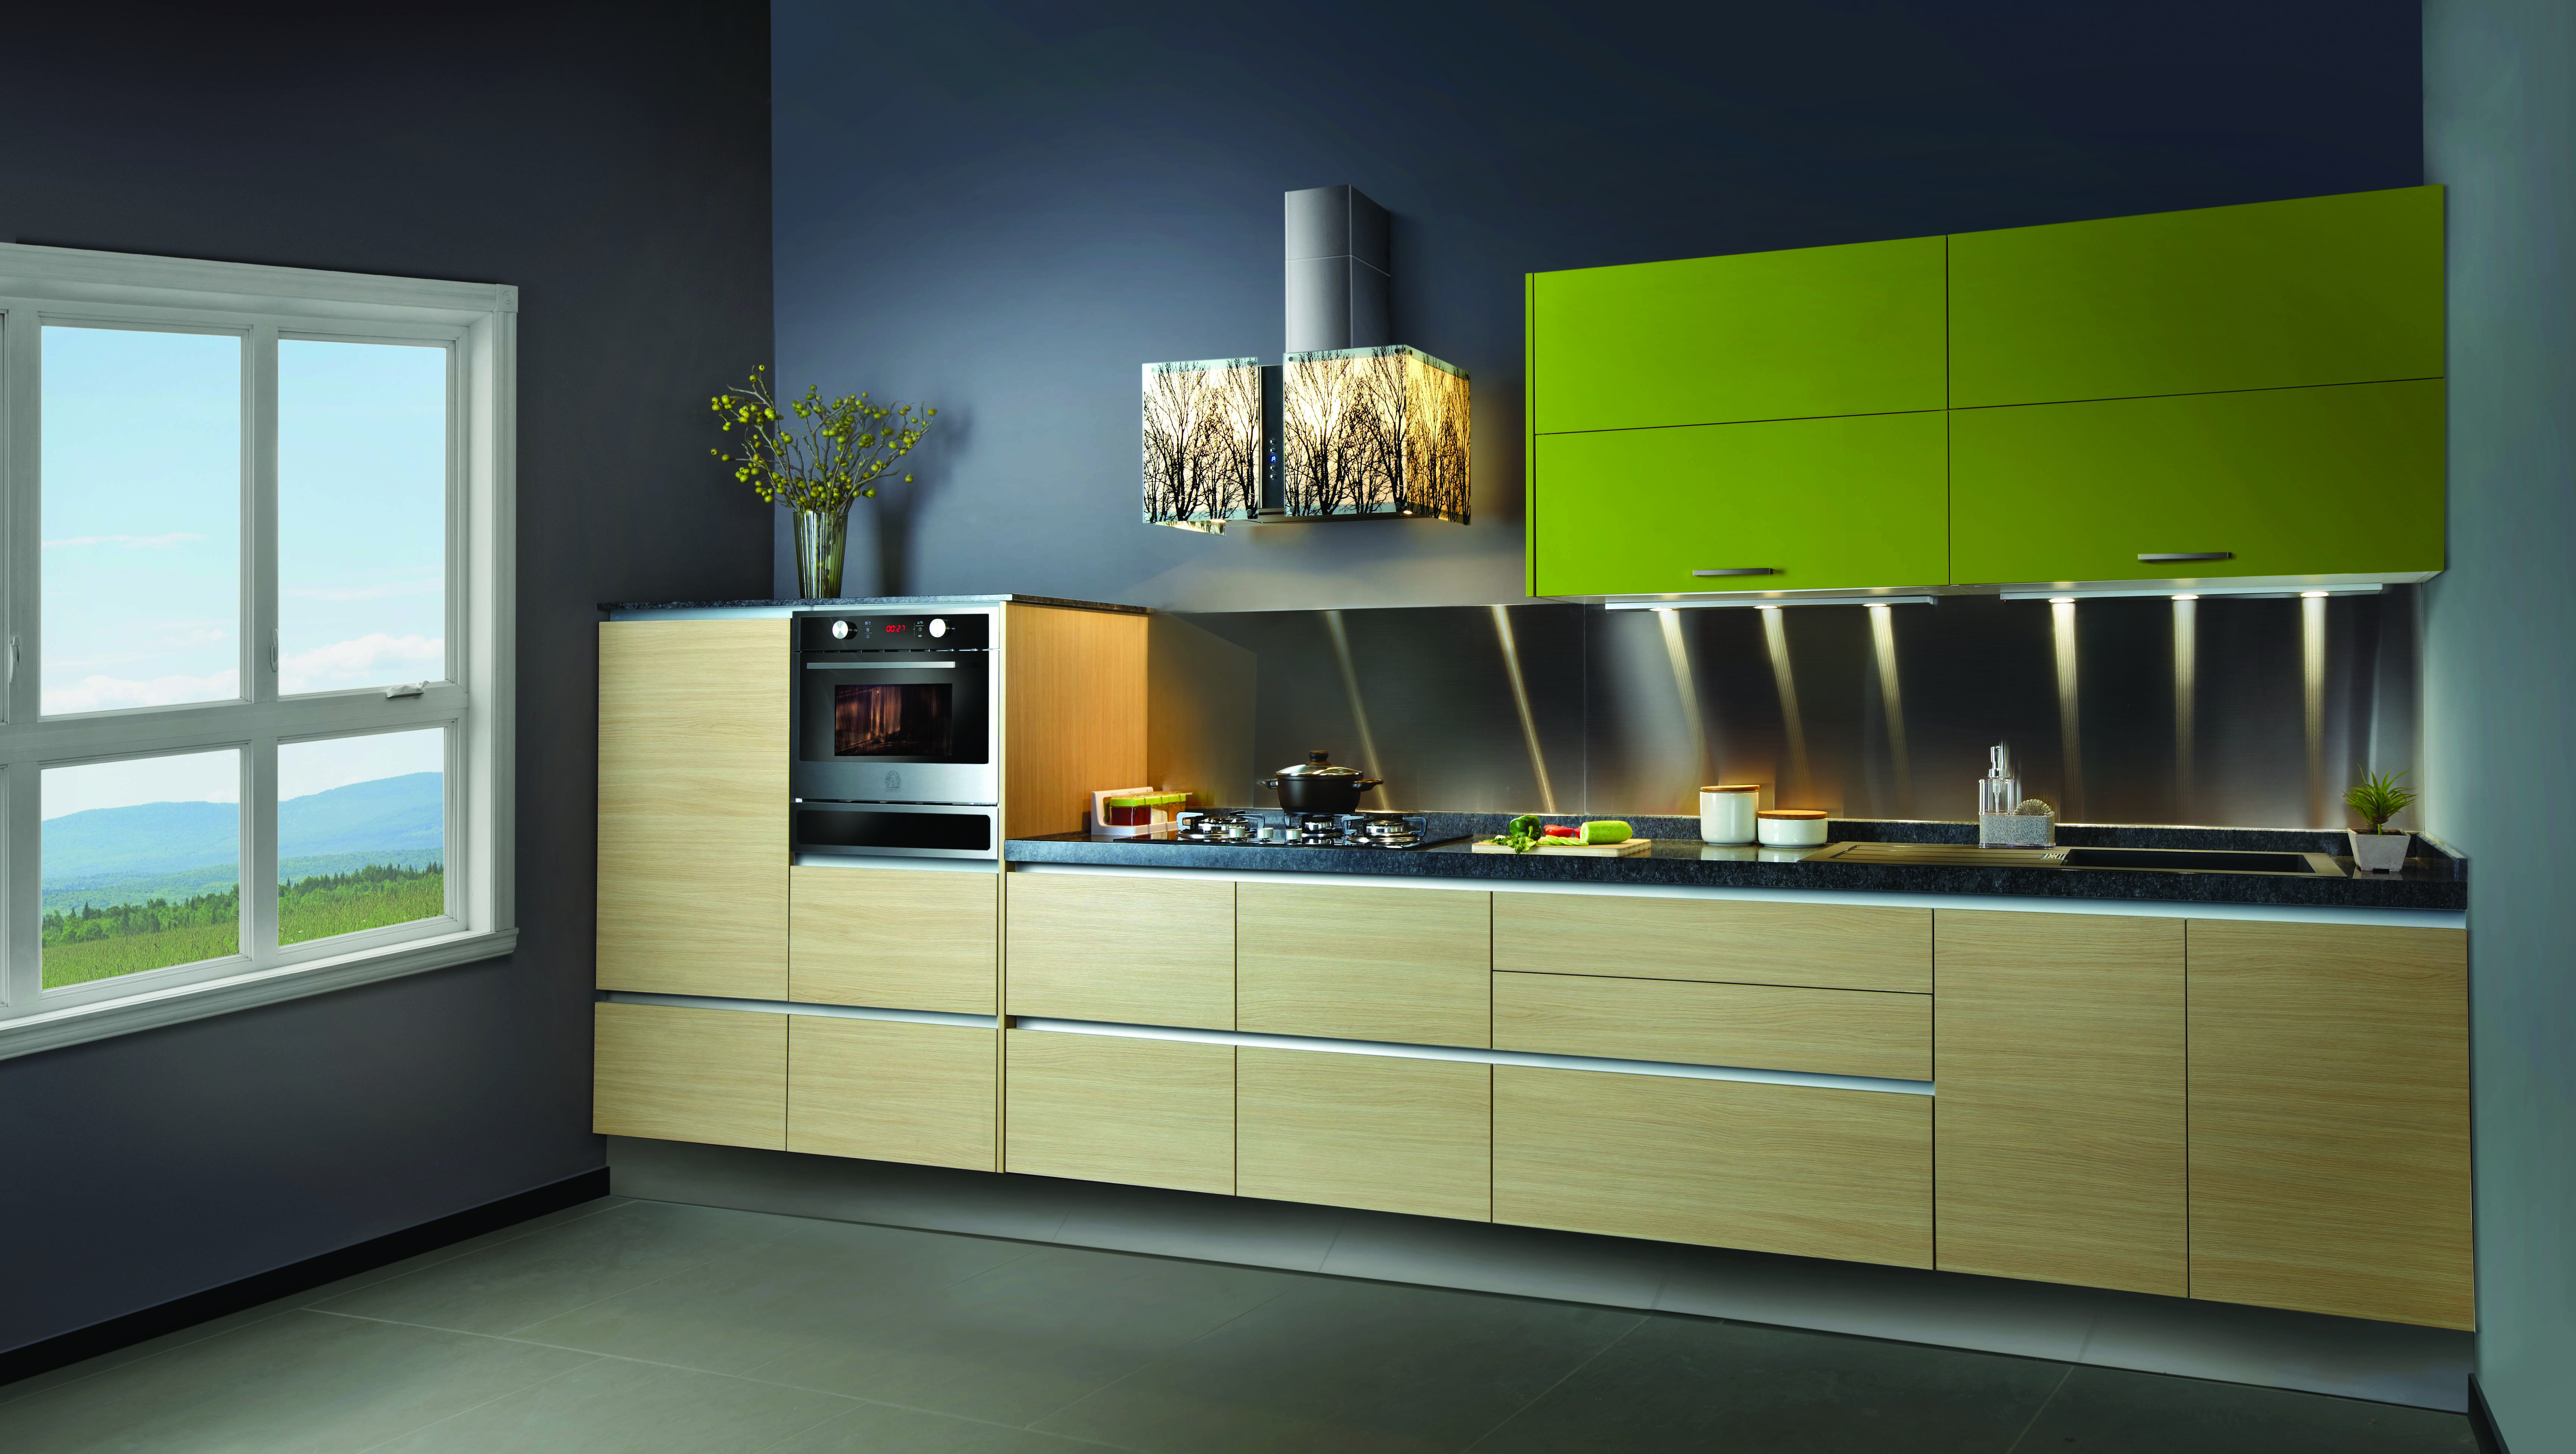 SLEEK Modular Kitchens Http://www.sleekkitchens.com/modular Kitchen